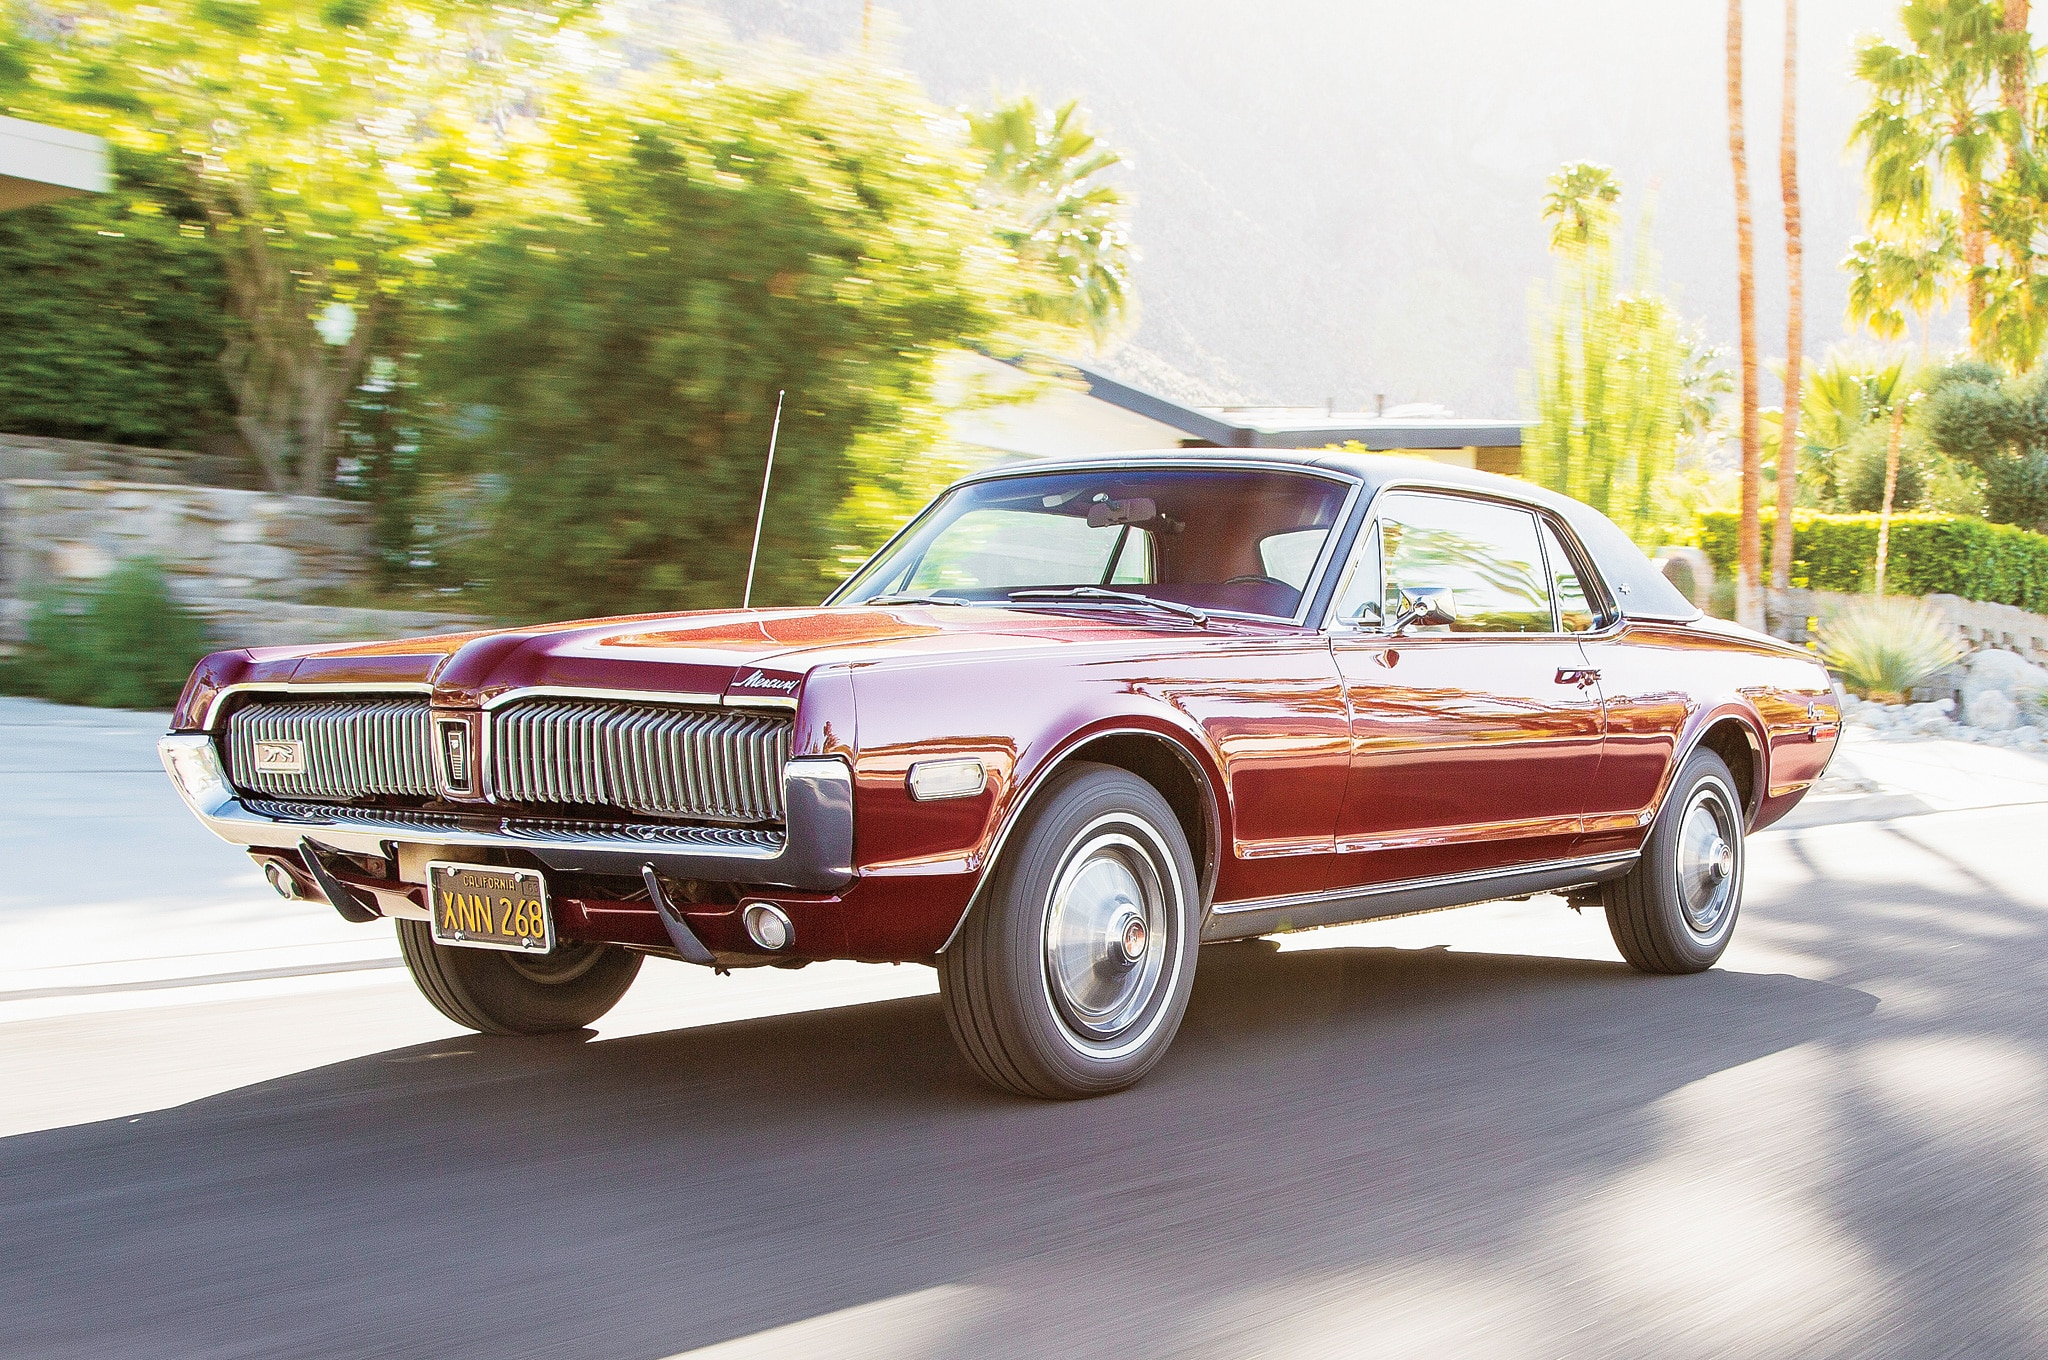 Worksheet. Collectible Classic 19671968 Mercury Cougar XR7